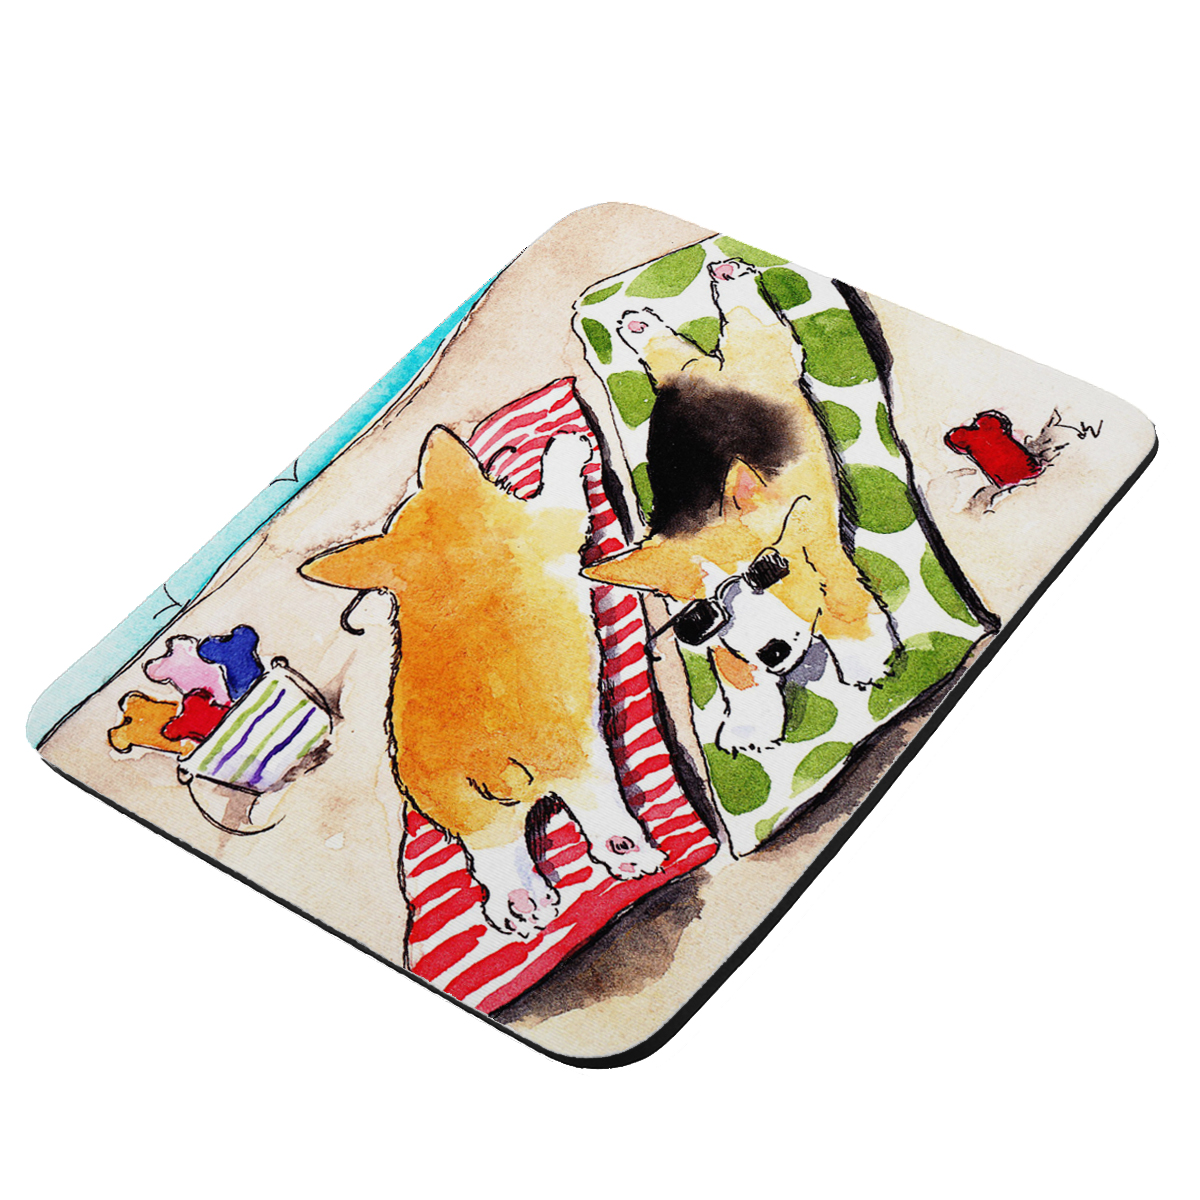 Beach Corgis Welsh Corgi Dog Art by Denise Every - KuzmarK Mousepad / Hot Pad / Trivet